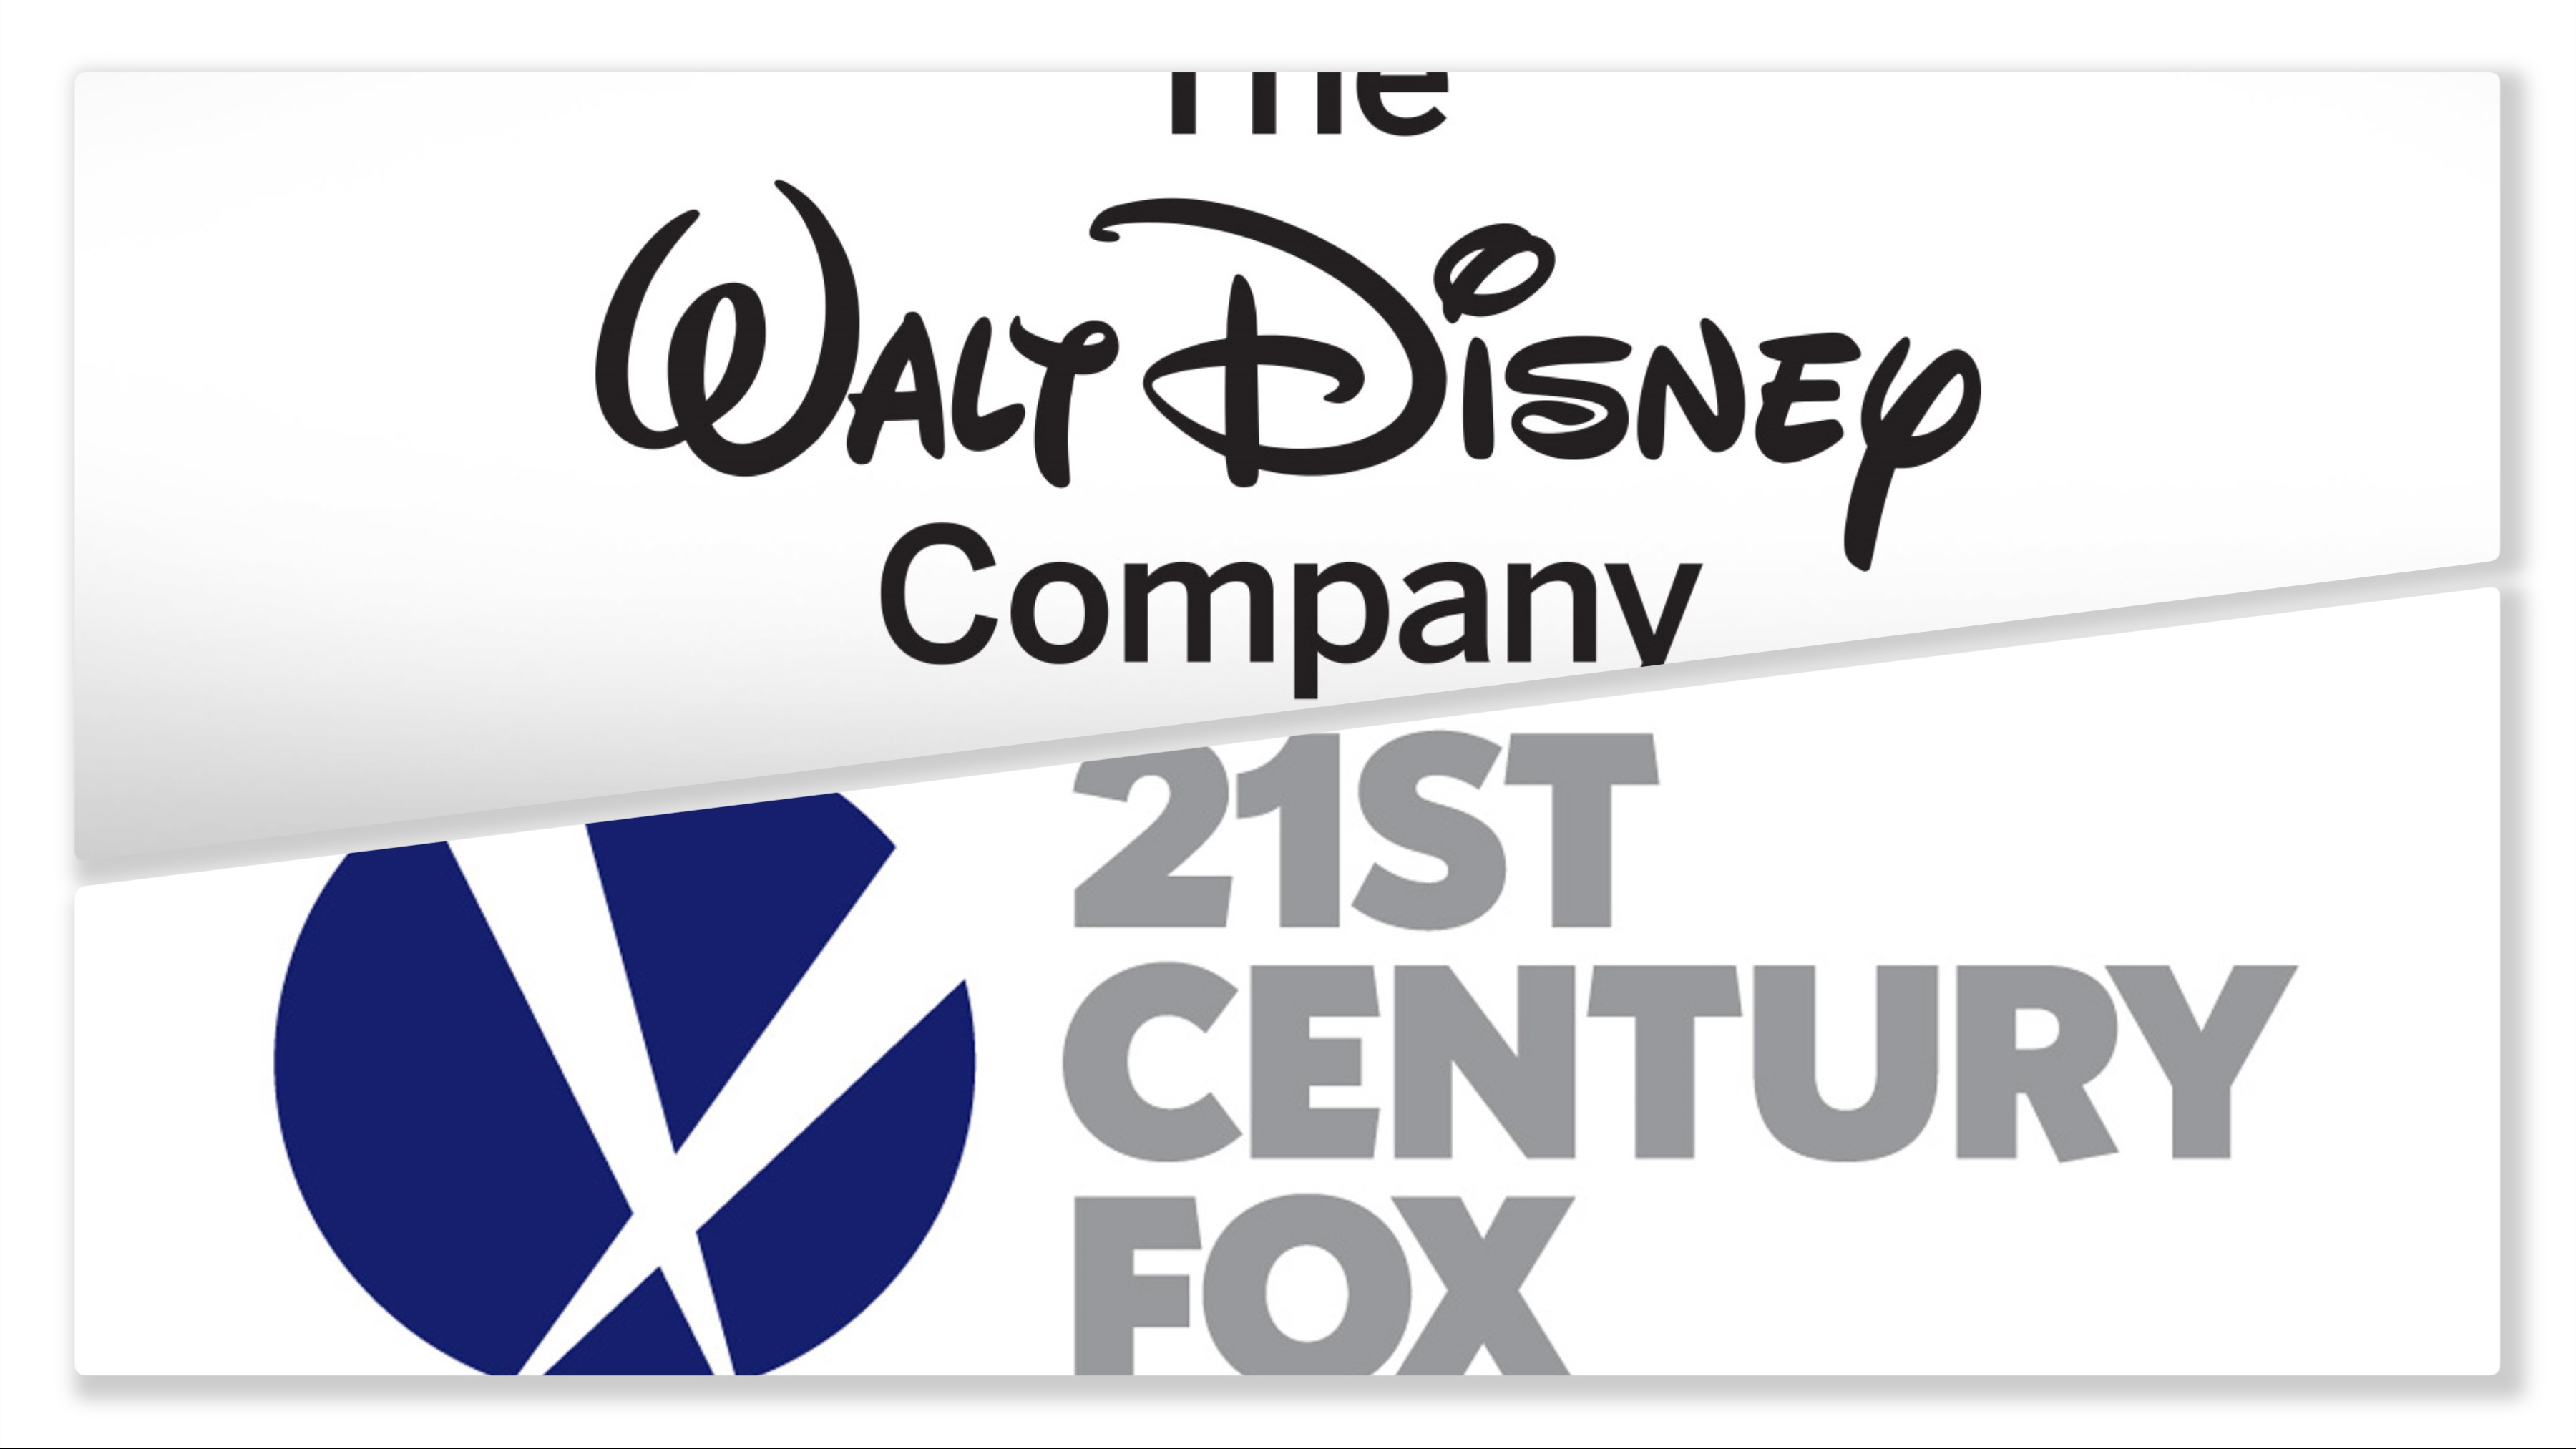 Disney to Buy Fox Media Assets for $52 Billion Dollars: Here's What They Get